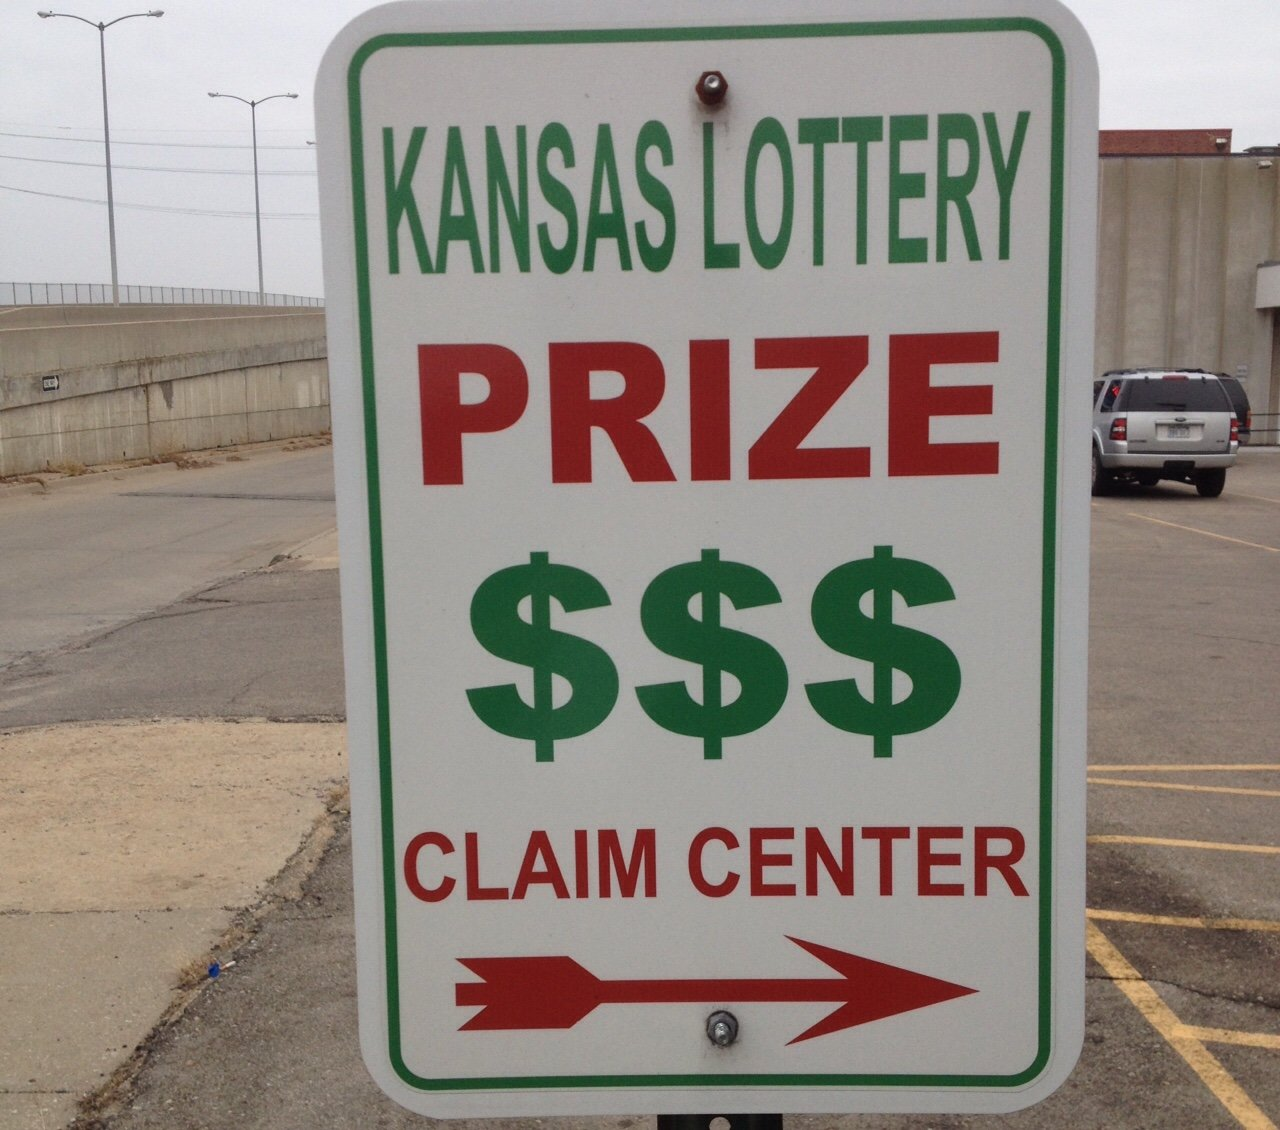 Sign posted near the Kansas Lottery Claim Center in Topeka (Photo by J. Schafer)